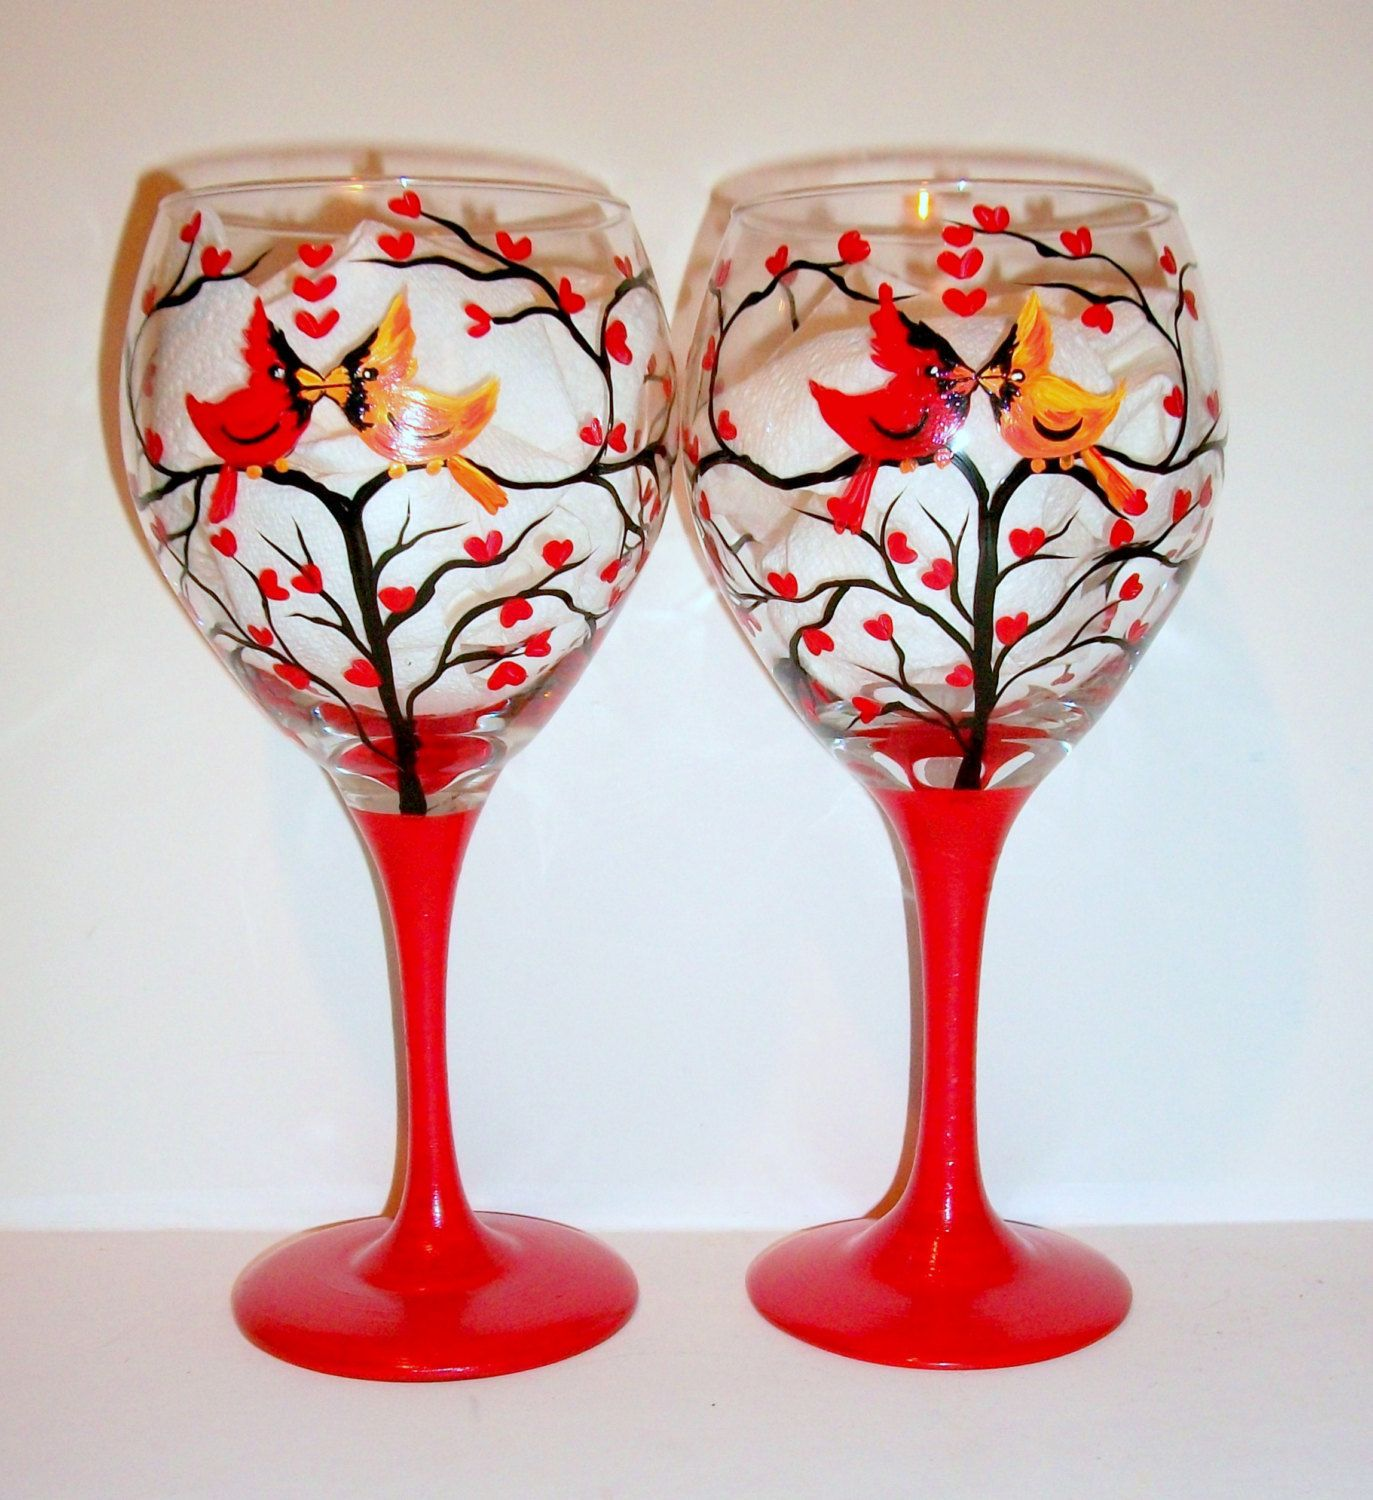 Cardinals Hand Painted Wine Glasses Love Birds Set Of 2 20 Etsy Hand Painted Wine Glasses Painted Wine Glasses Red Wine Glasses